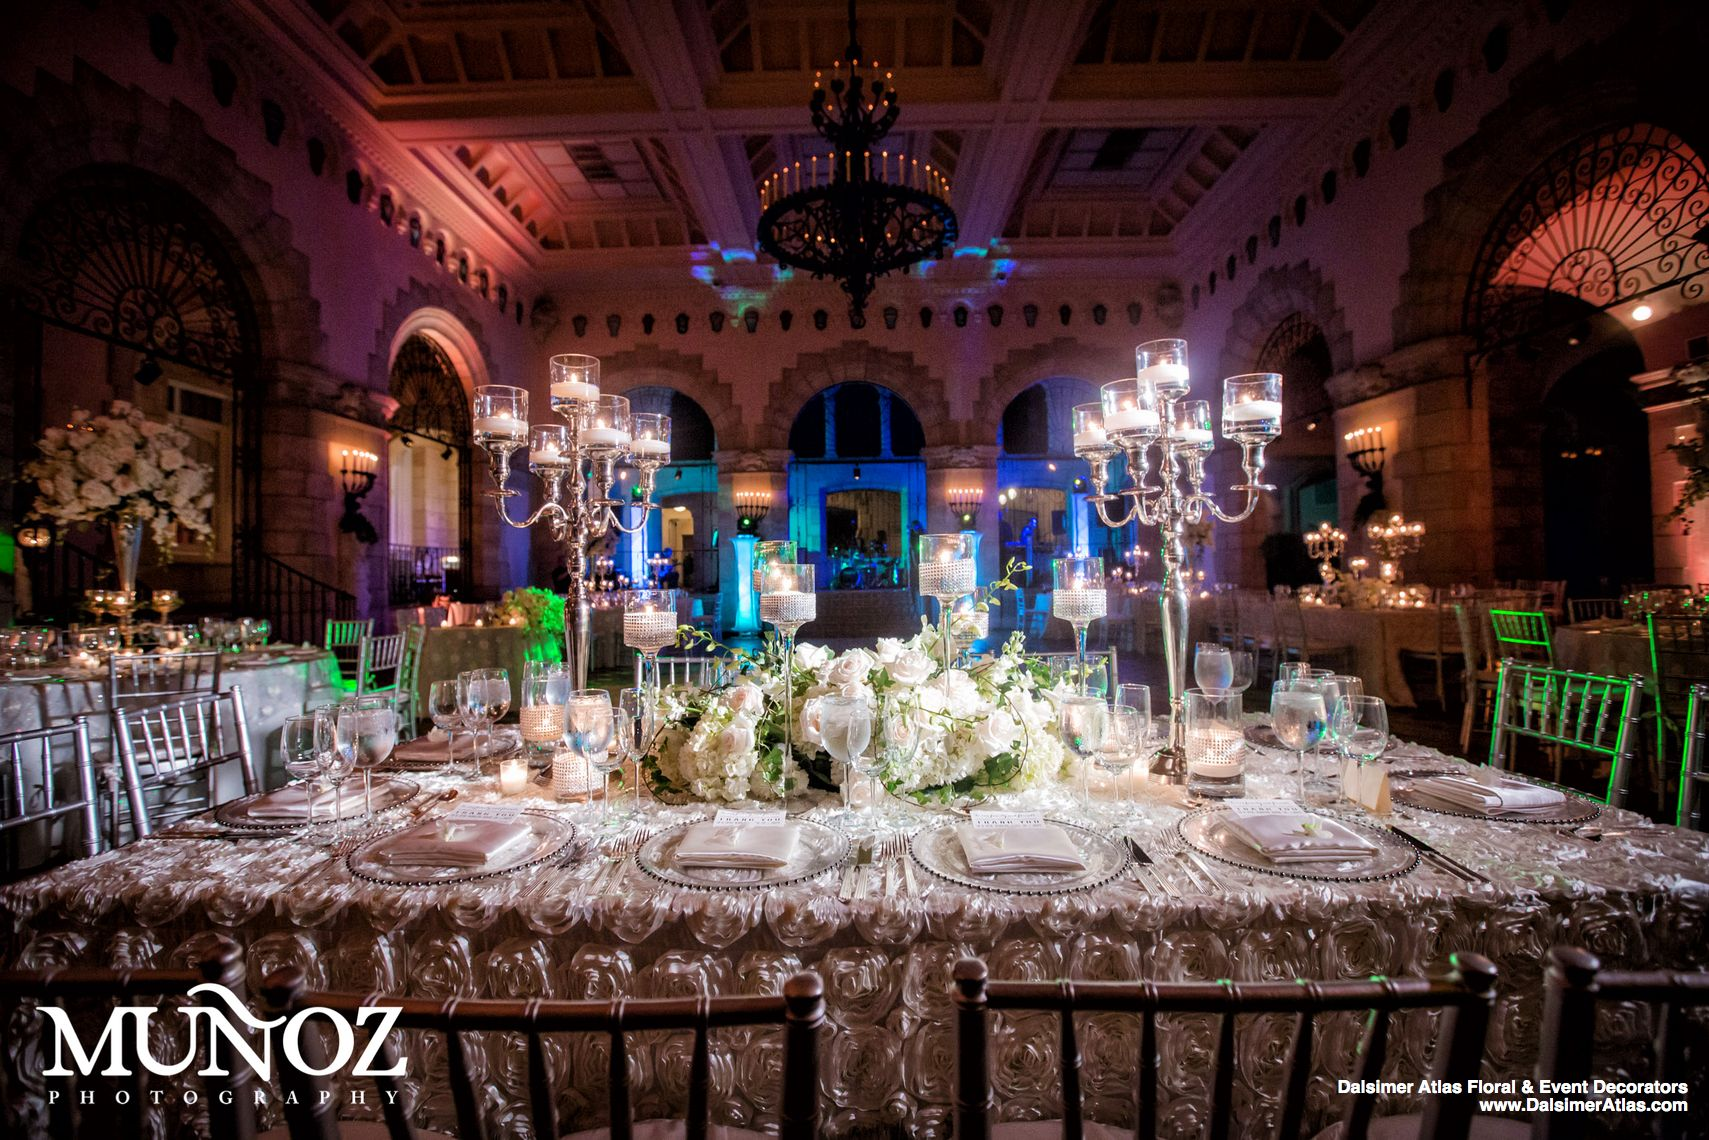 wedding-florist-flowers-decorations-flagler-museum-palm-beach-florida-dalsimer-atlas-15